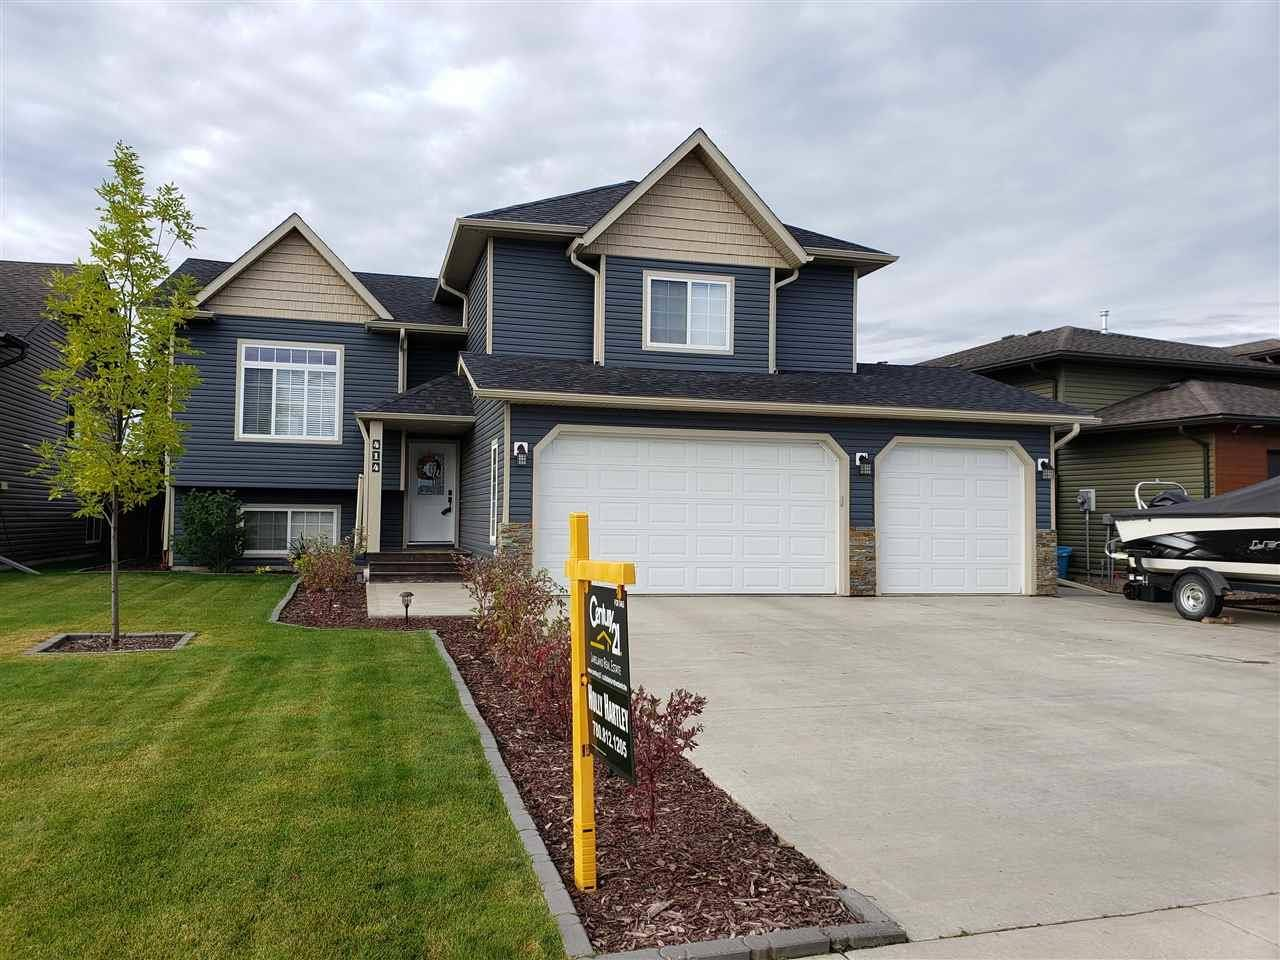 House for sale at 414 26 St Cold Lake Alberta - MLS: E4173584